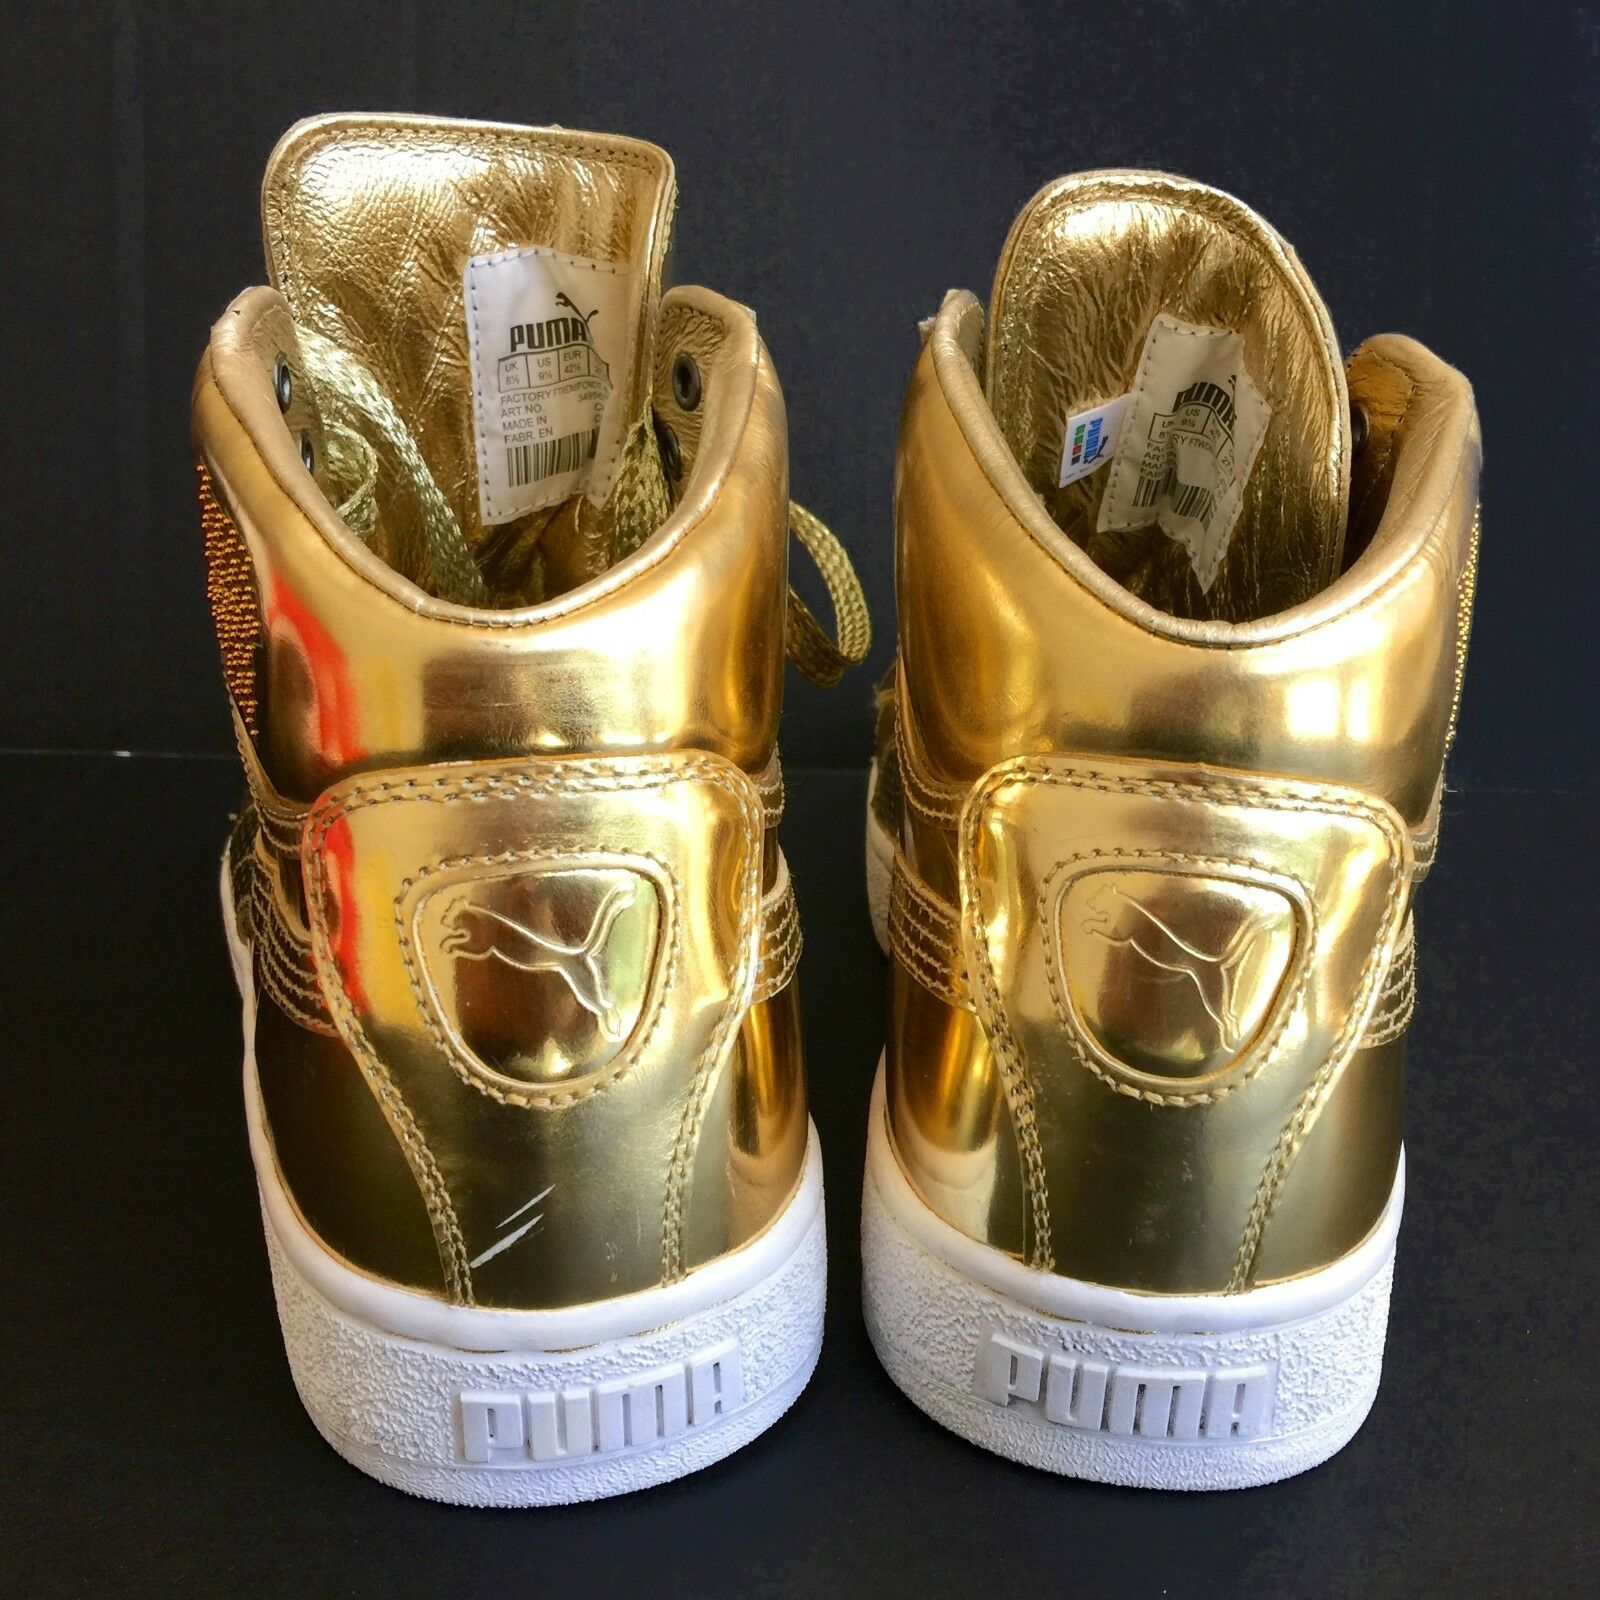 New PUMA UNDFTD 24K Mid Mirror gold Edition Edition Edition Sneakers size 9.5 607277